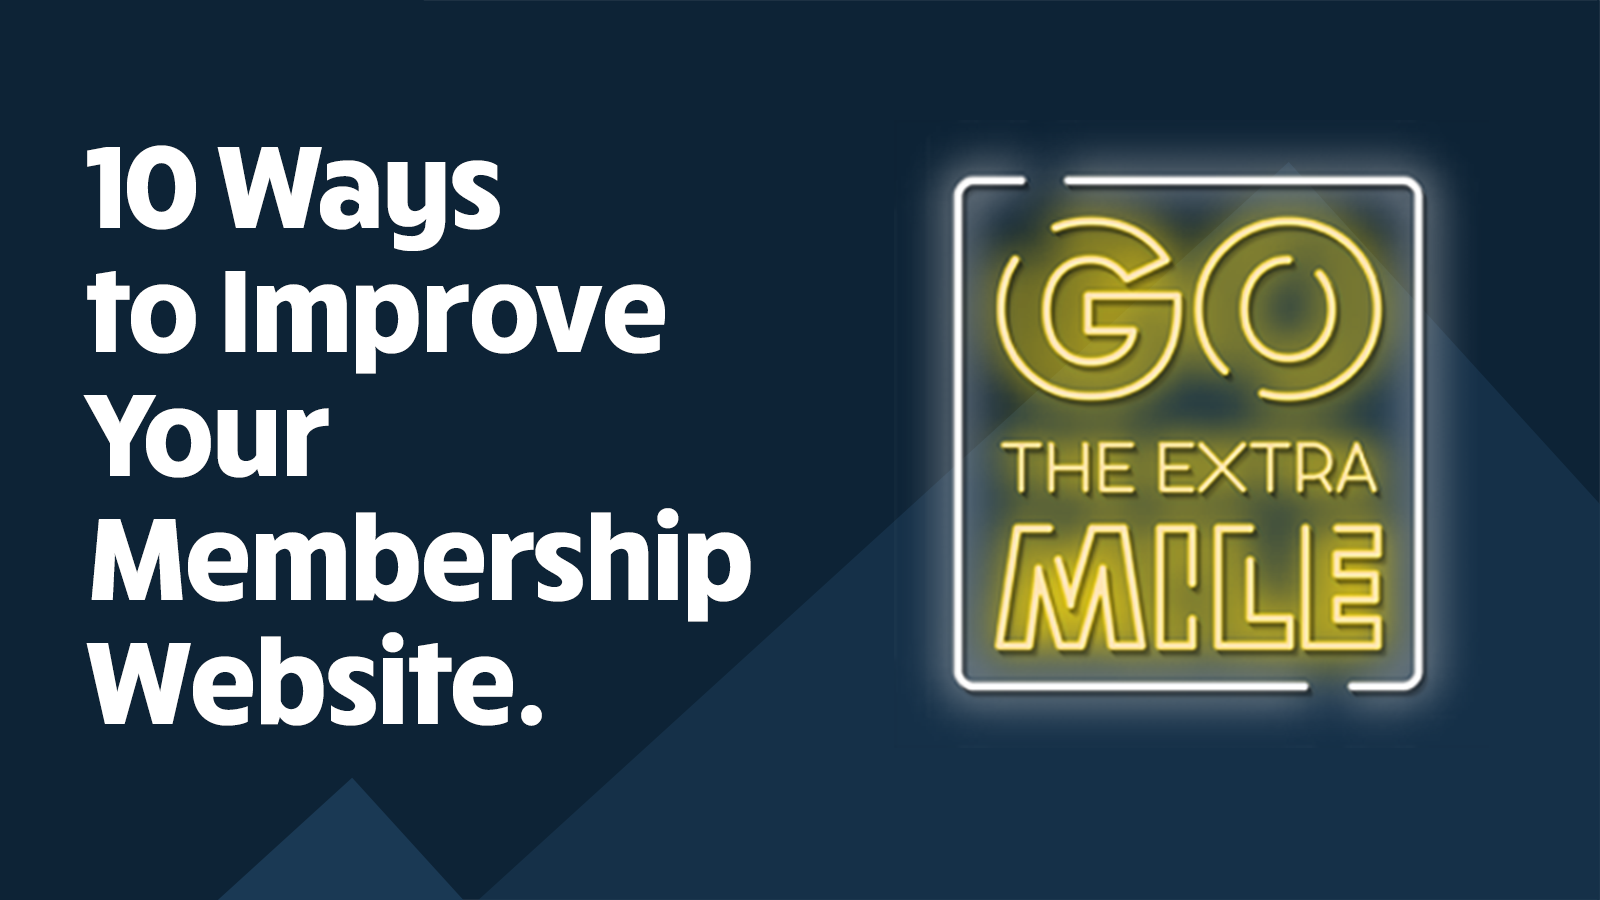 10 ways to improve your membership website. Neon sign with the words - Go the extra Mile!